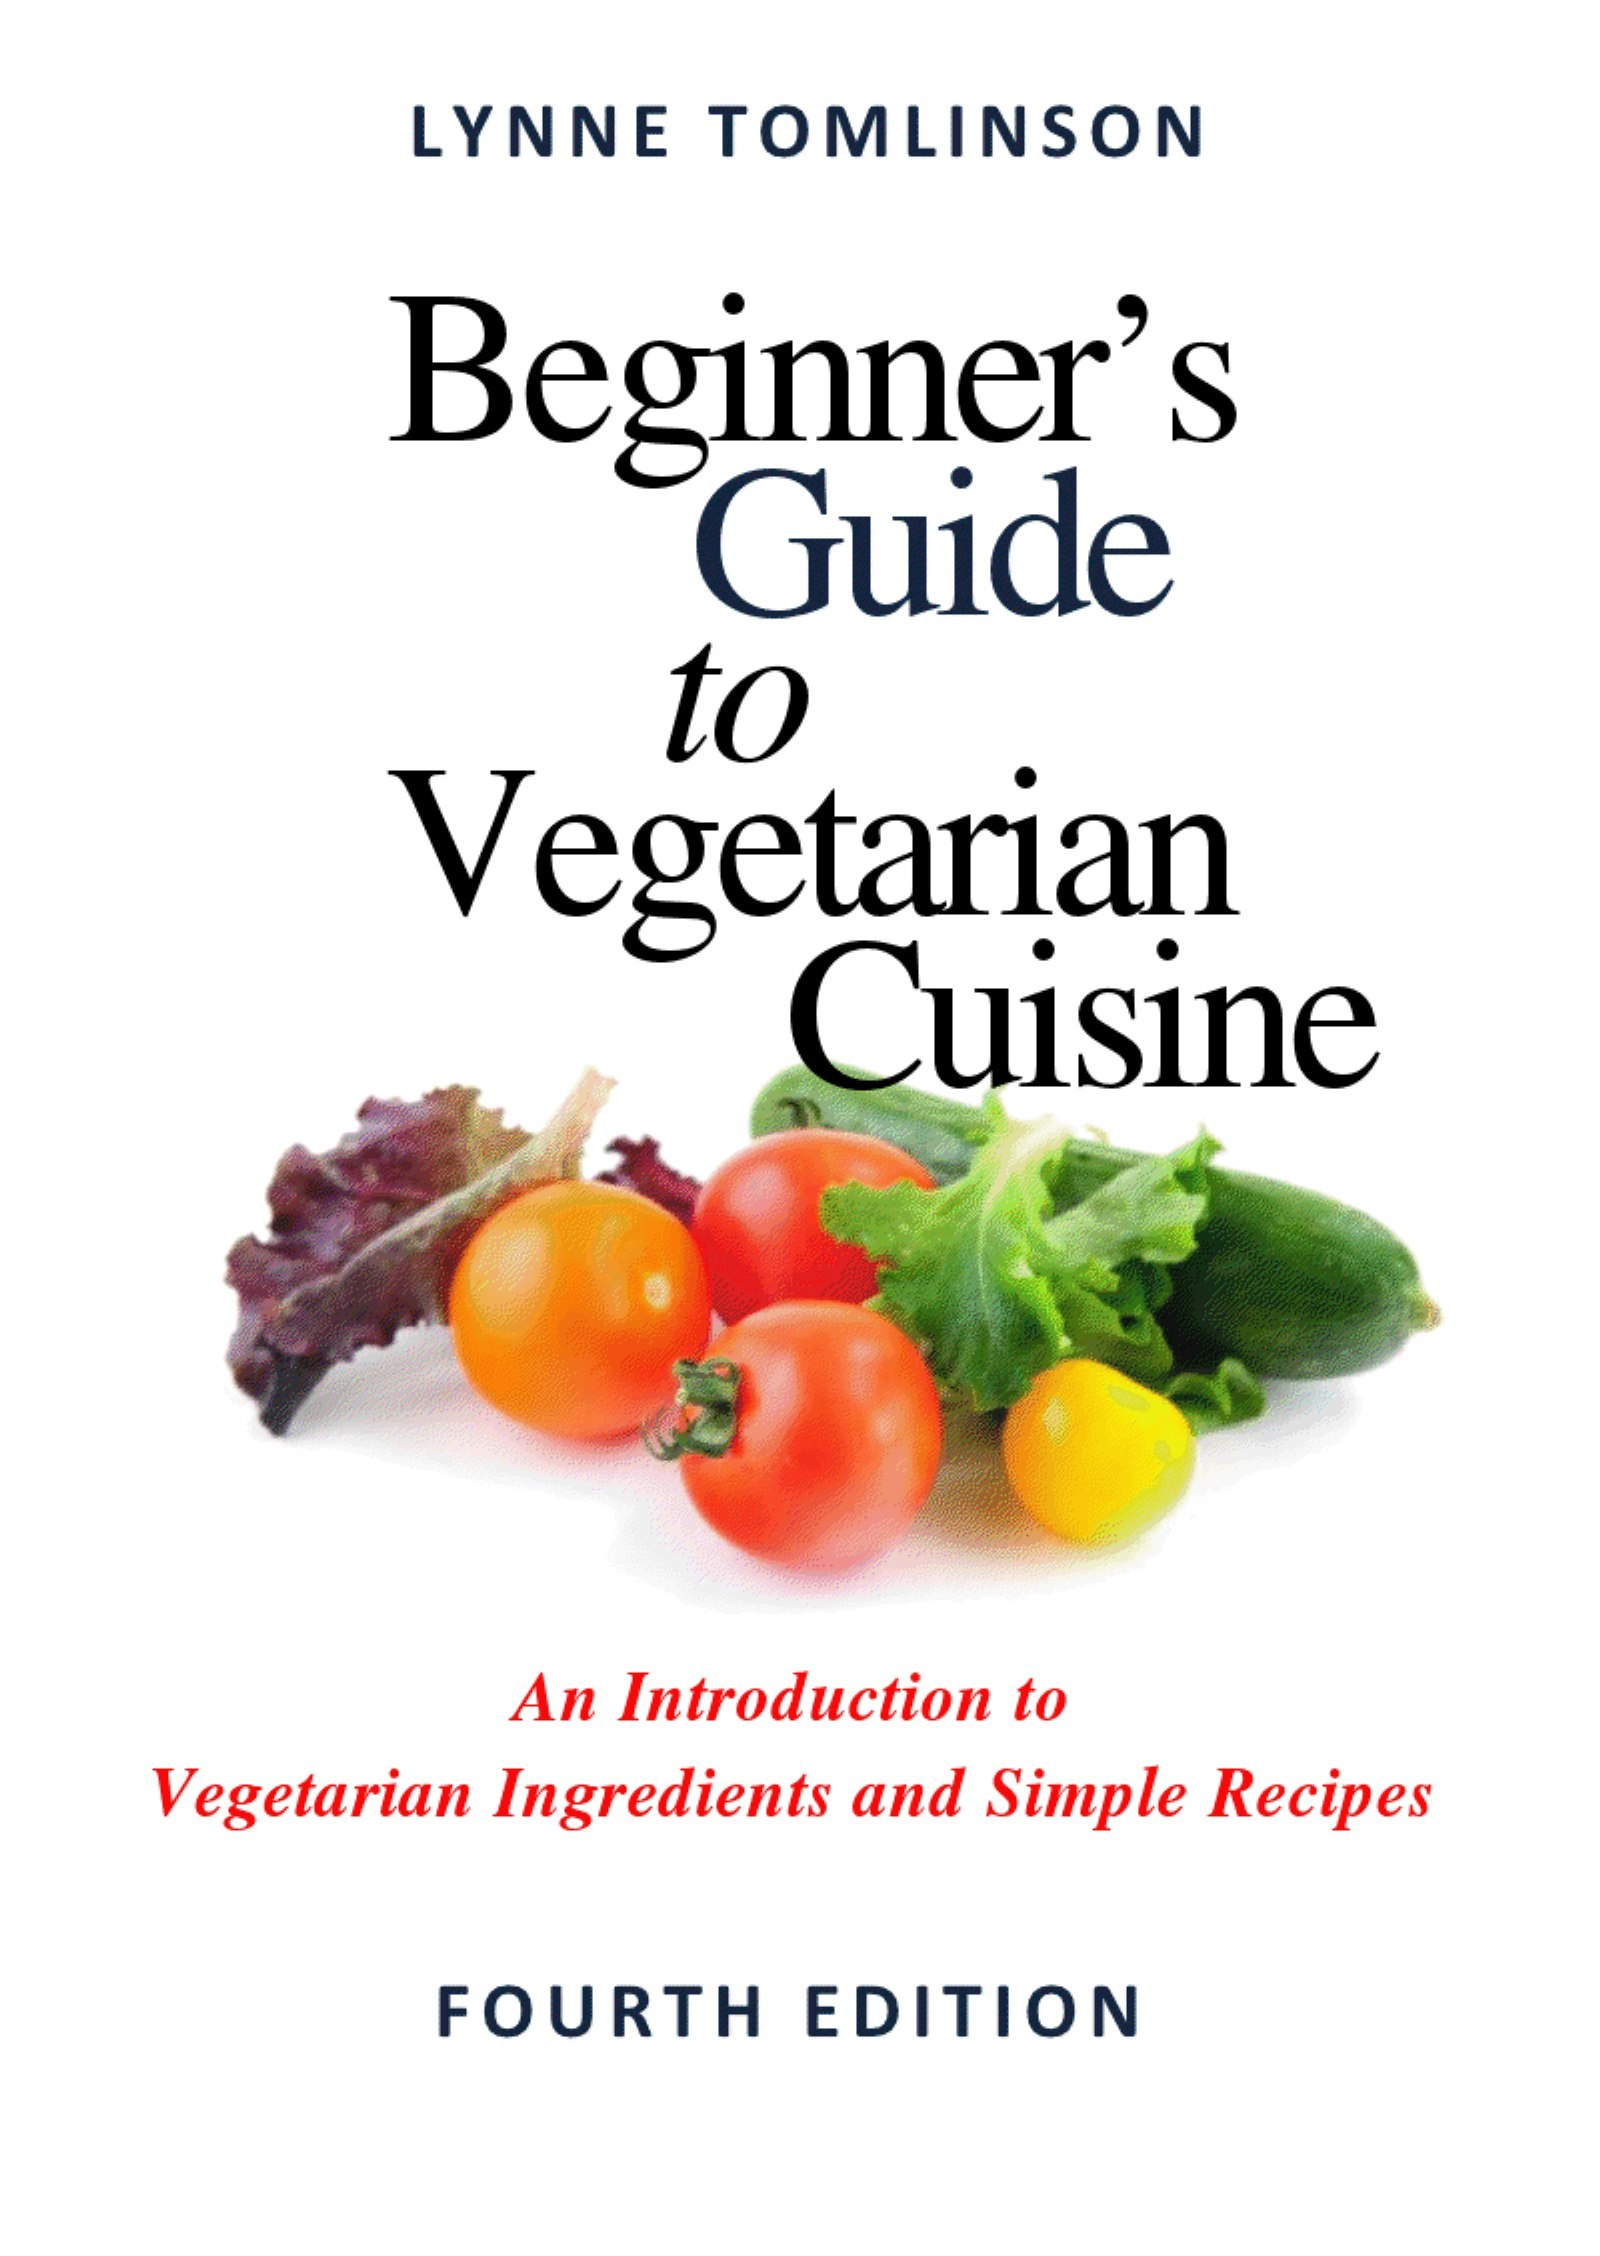 Beginner's Guide to Vegetarian Cuisine